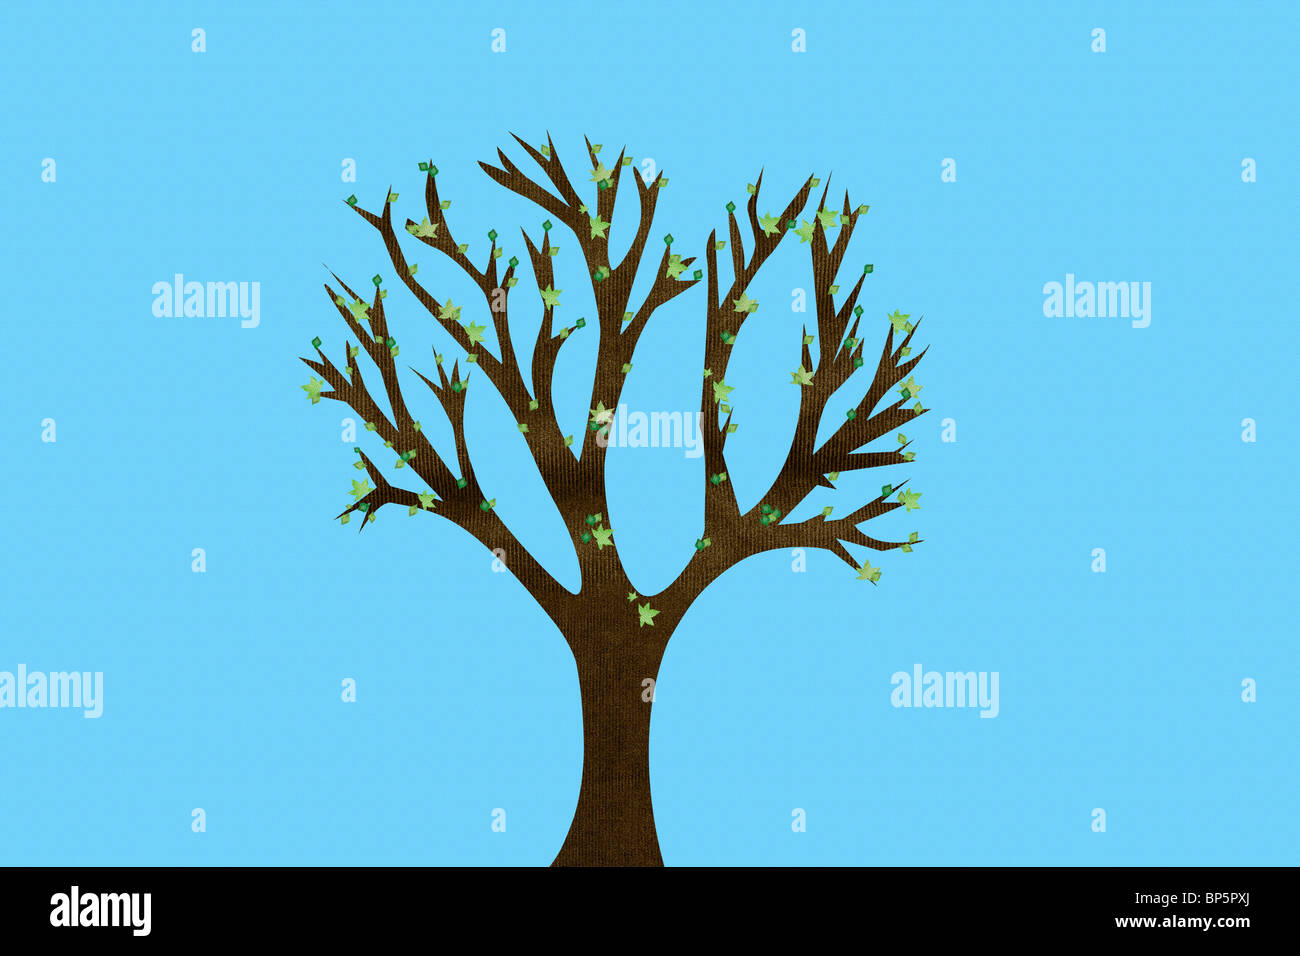 Bare tree in autumn - Stock Image